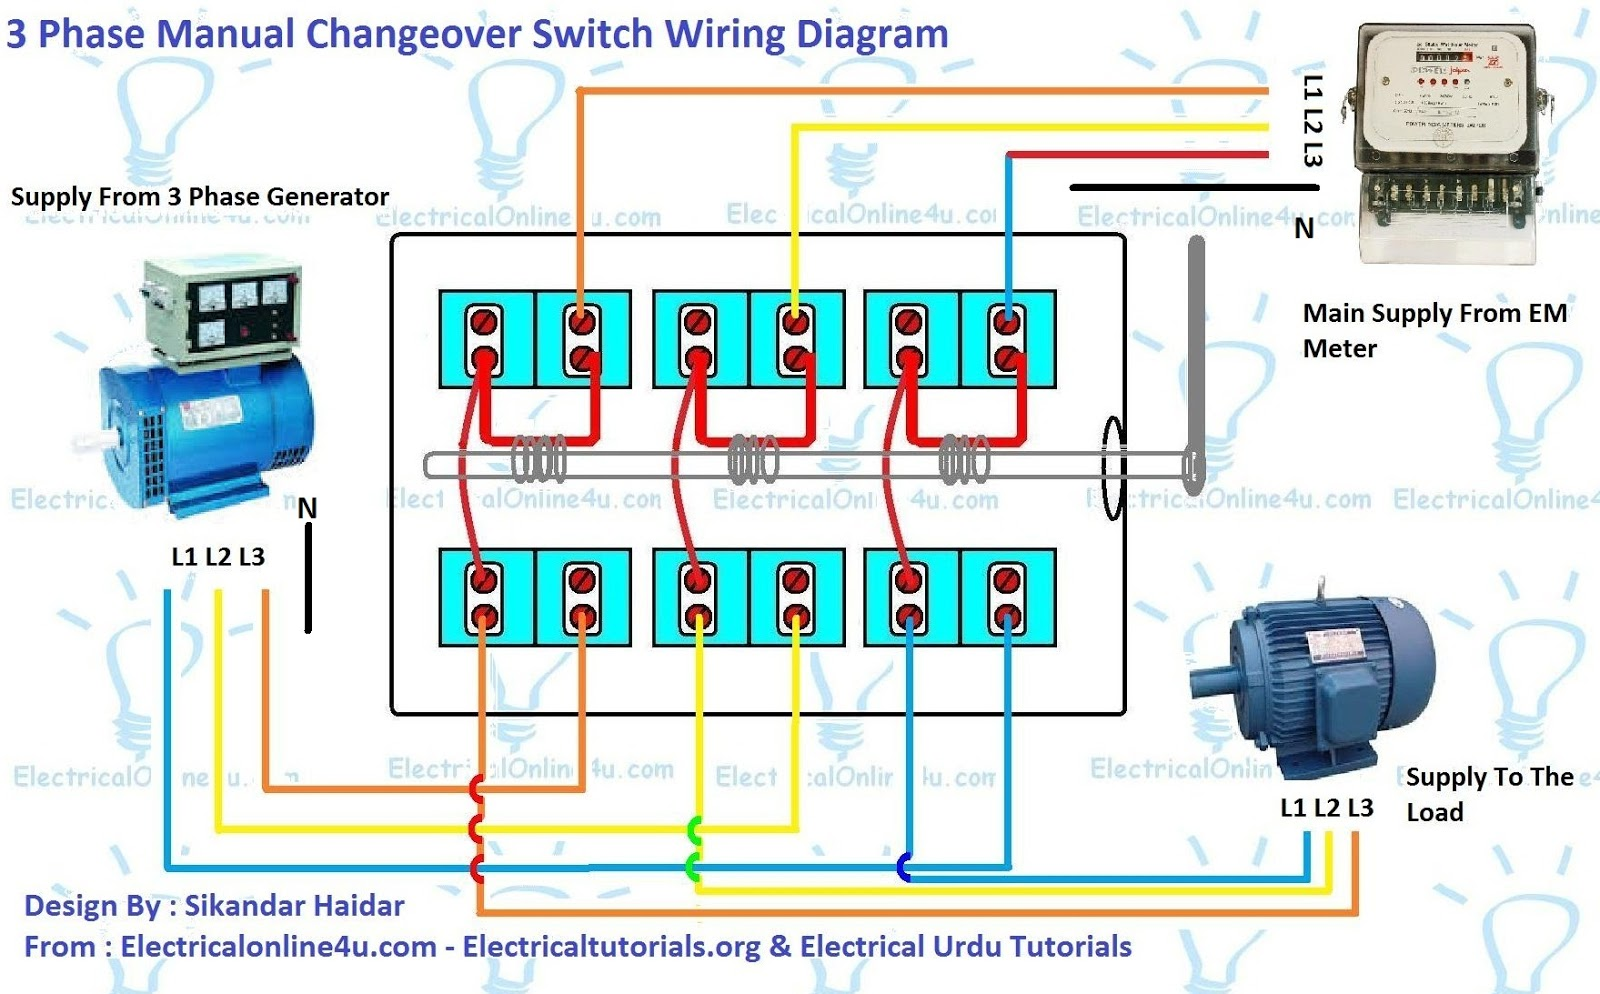 3 phase manual changeover switch wiring diagram for 480 volt 3 phase wiring 3 phase contactor wiring schematic [ 1600 x 994 Pixel ]